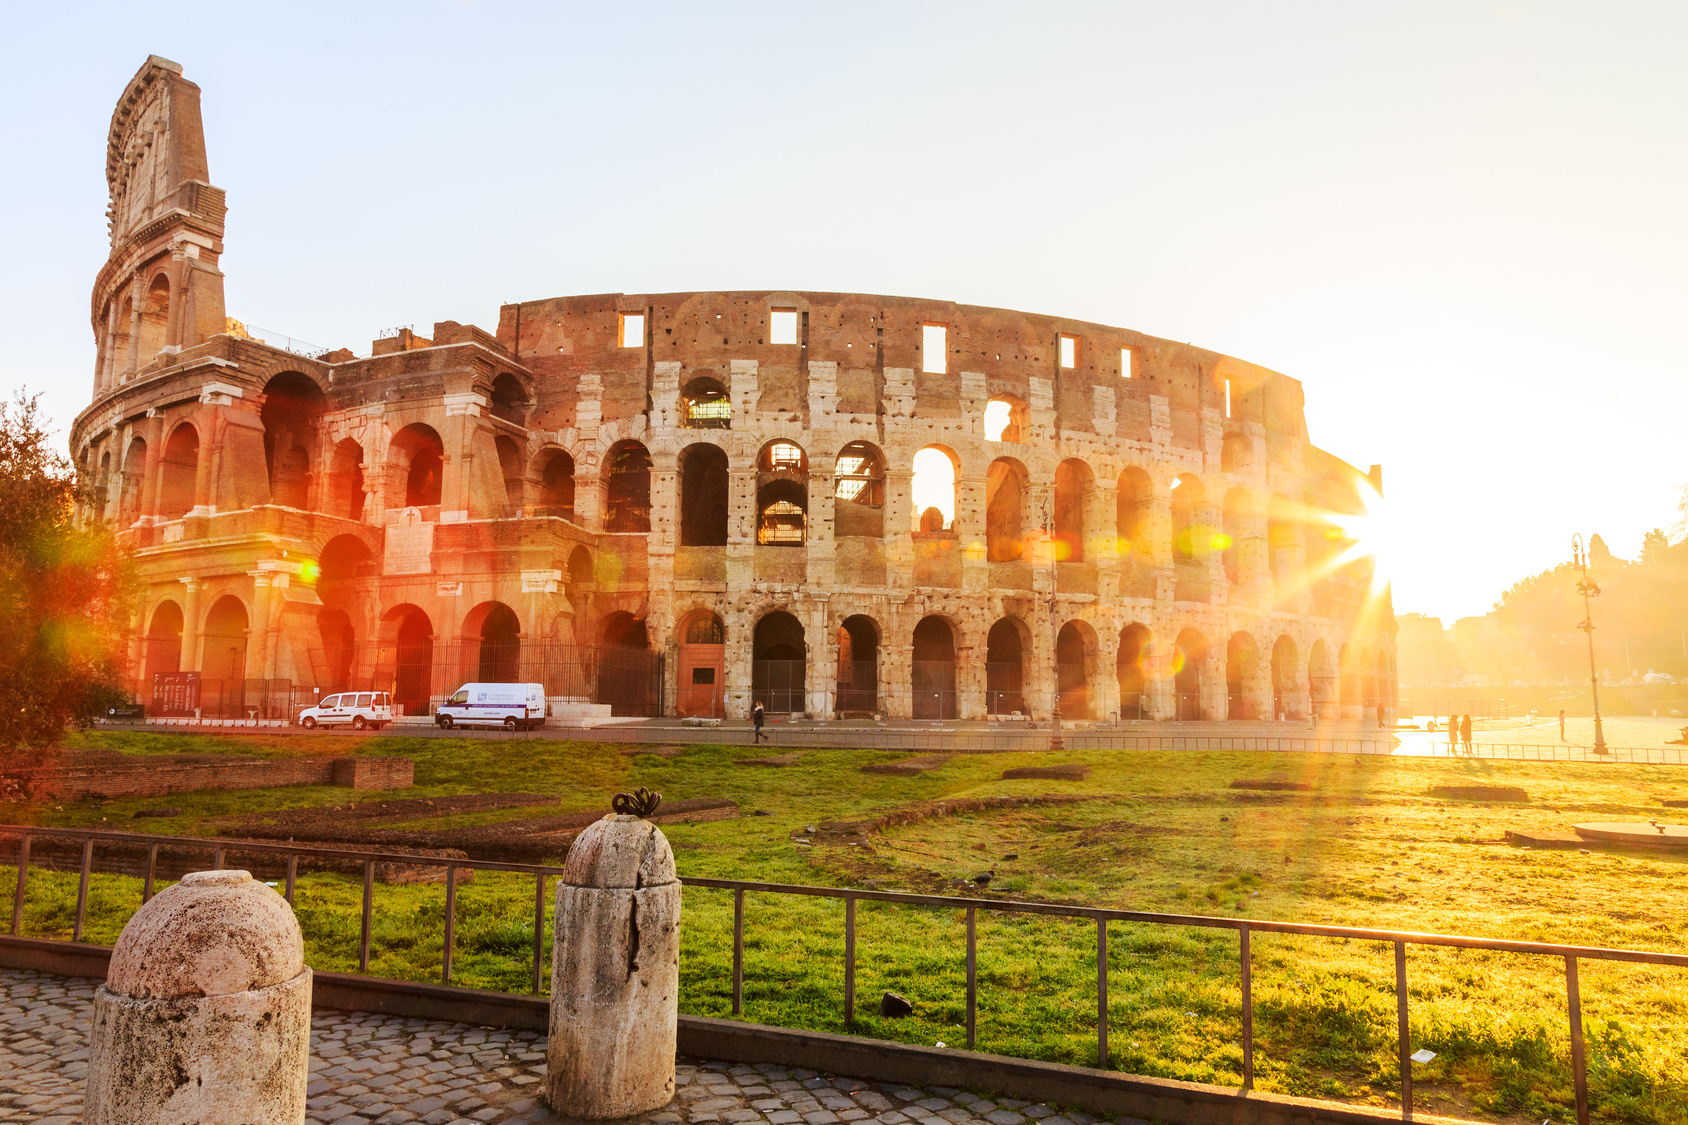 Colosseum, Rome, morning sun, Italy, Europe.